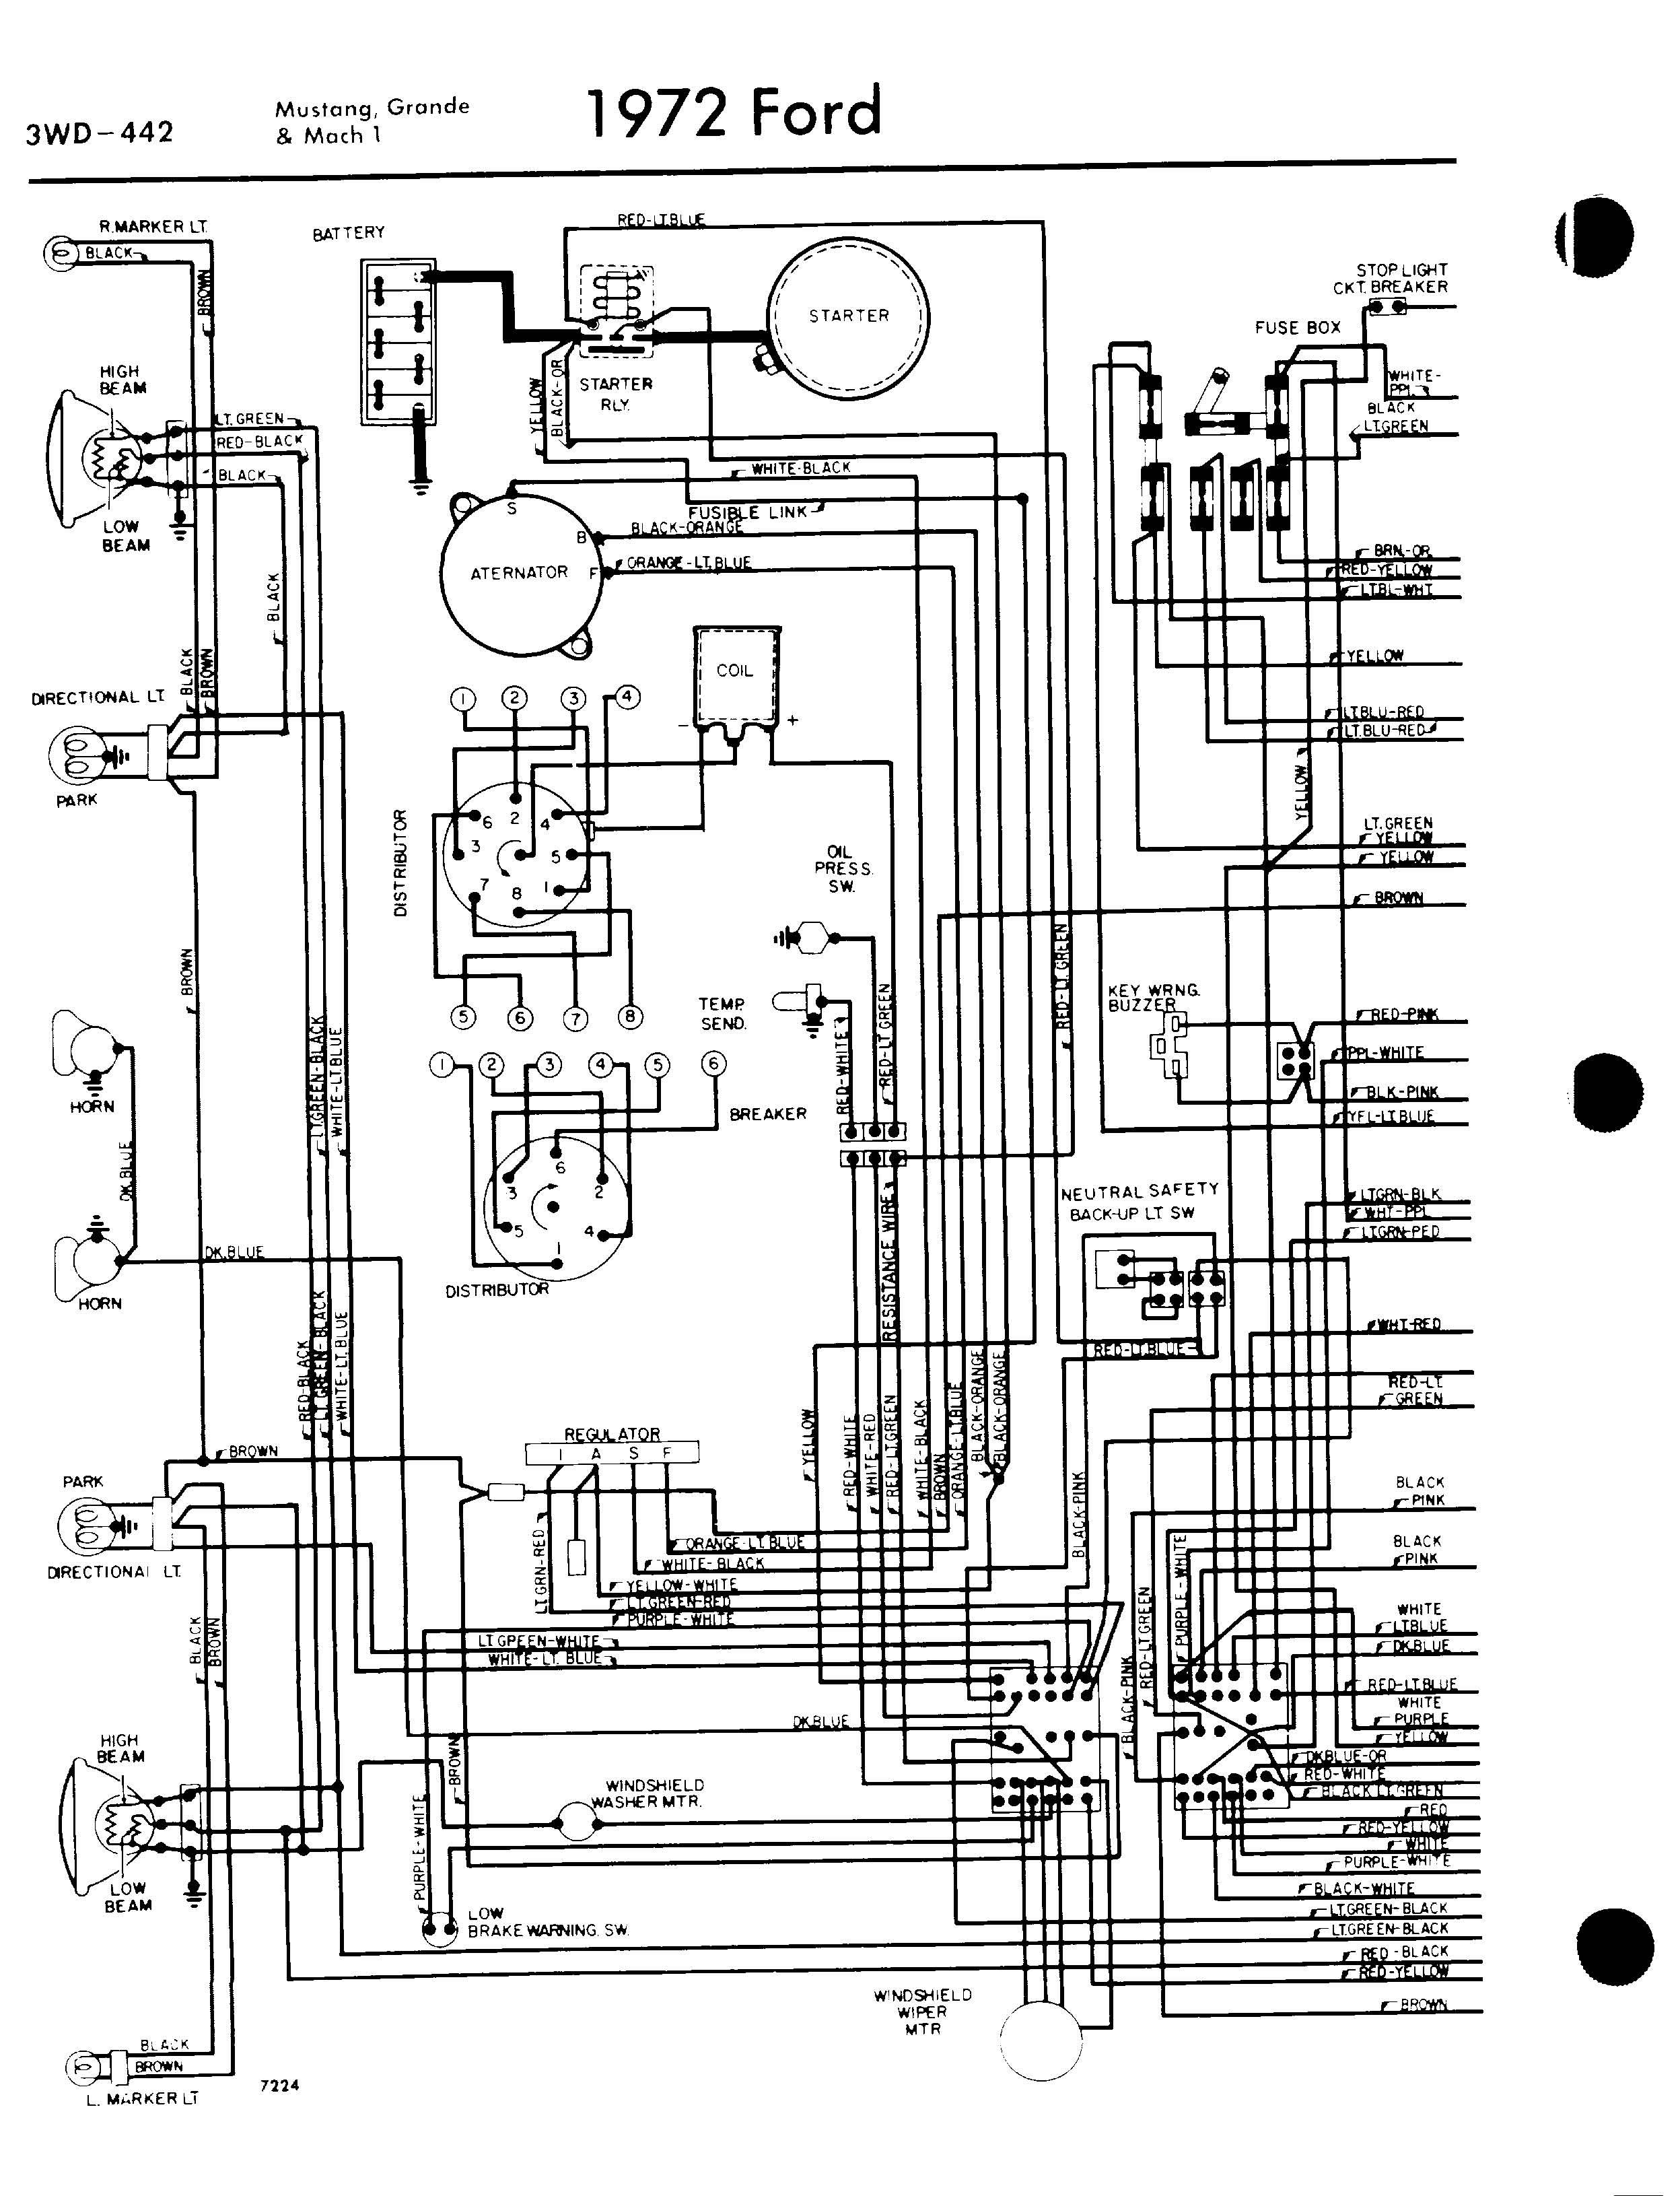 72 Ford Starter Wiring Circuit Diagram Symbols Motor 1971 Mustang Enthusiast Diagrams U2022 Rh Rasalibre Co